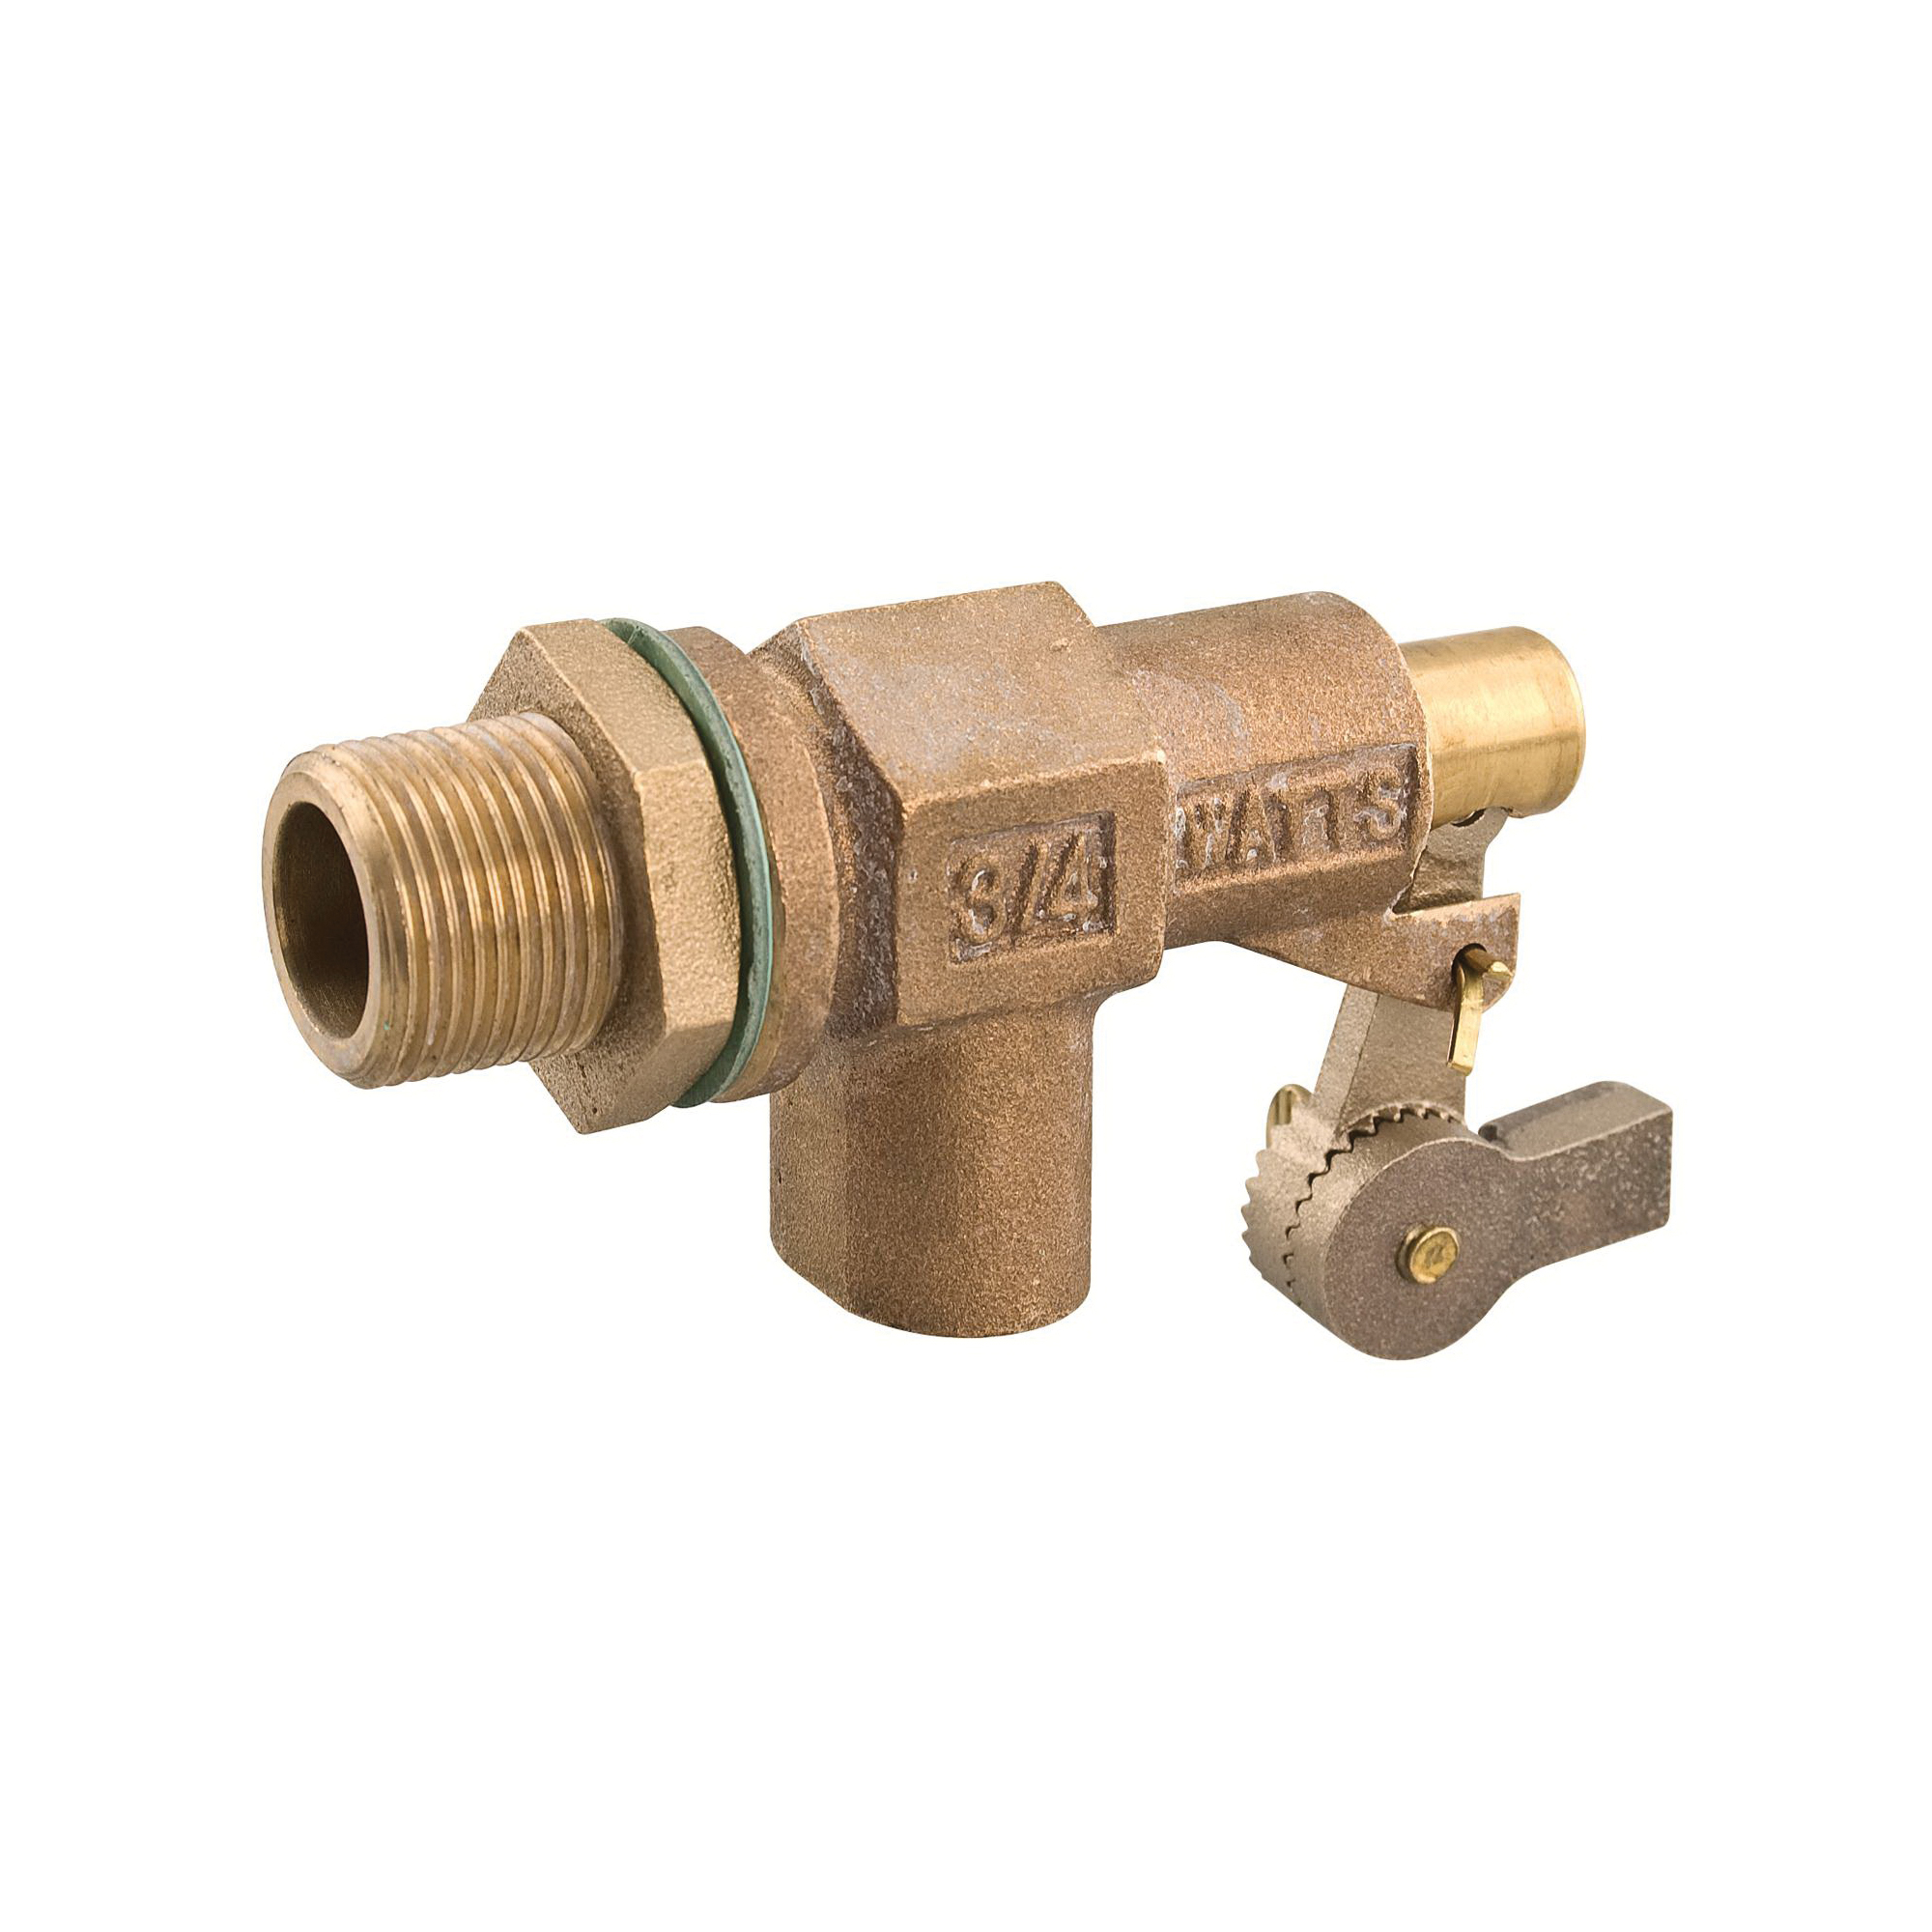 WATTS® 750 Heavy Duty Mechanical Float Valve, 3/4 in, Flanged x MNPT, 40 to 60 gpm, 165 psi